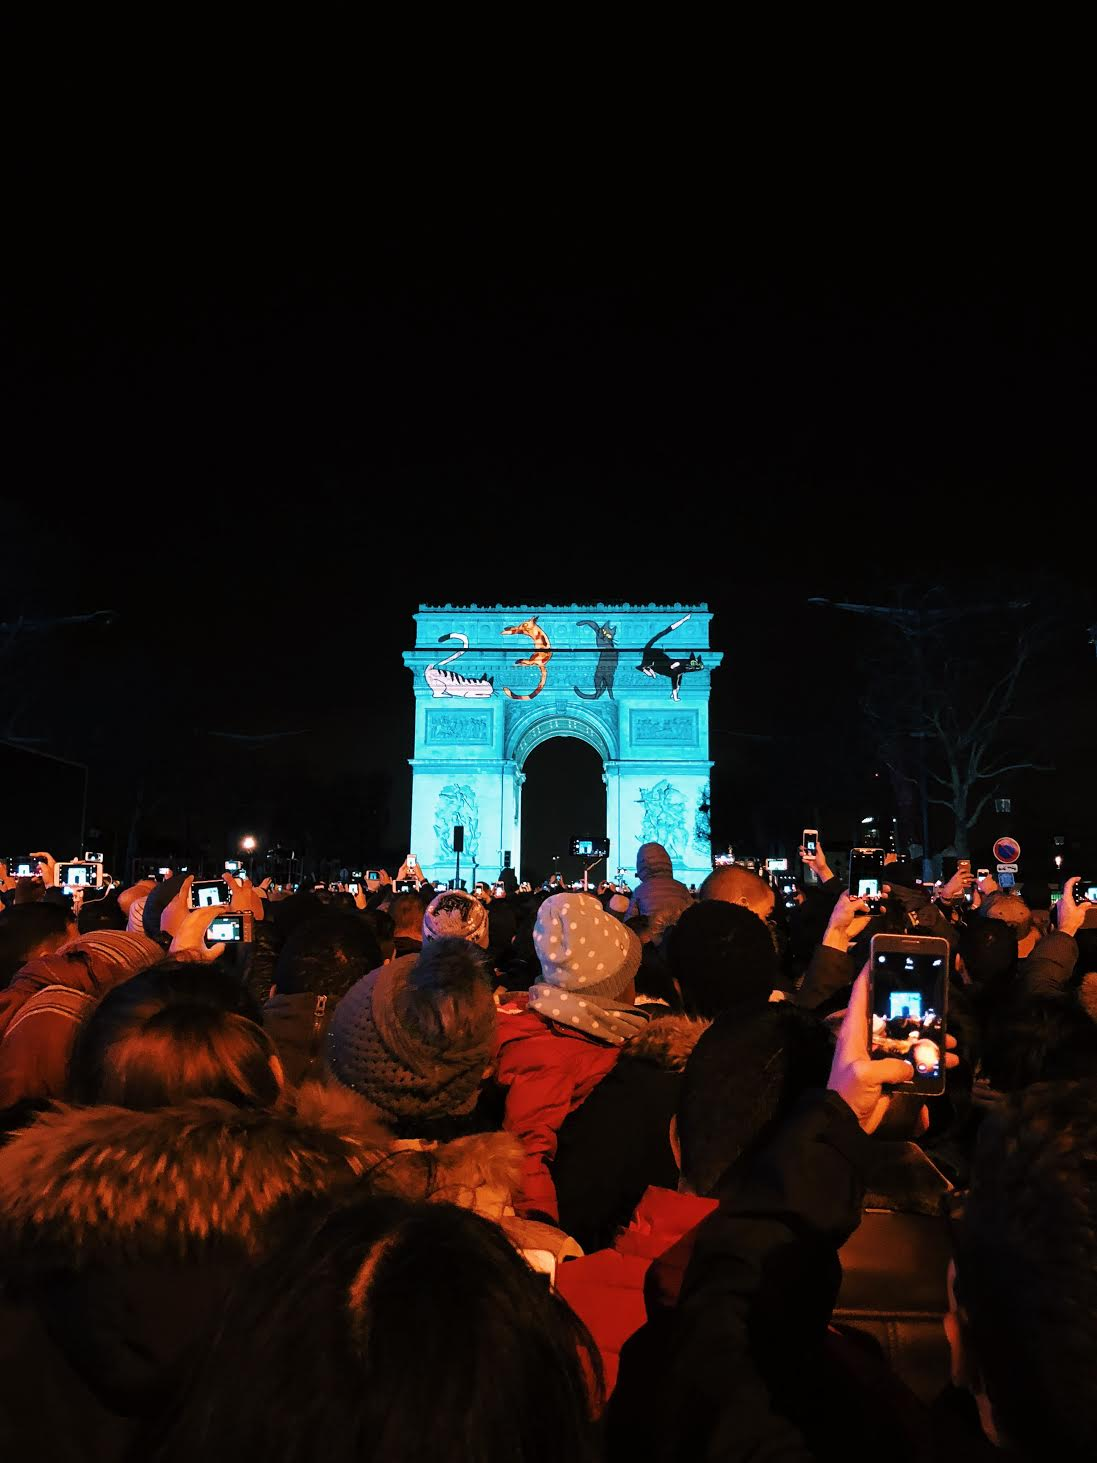 Muslim-travel-tips-New-Years-Eve-Arc-de-Triomphe-light-show.jpg